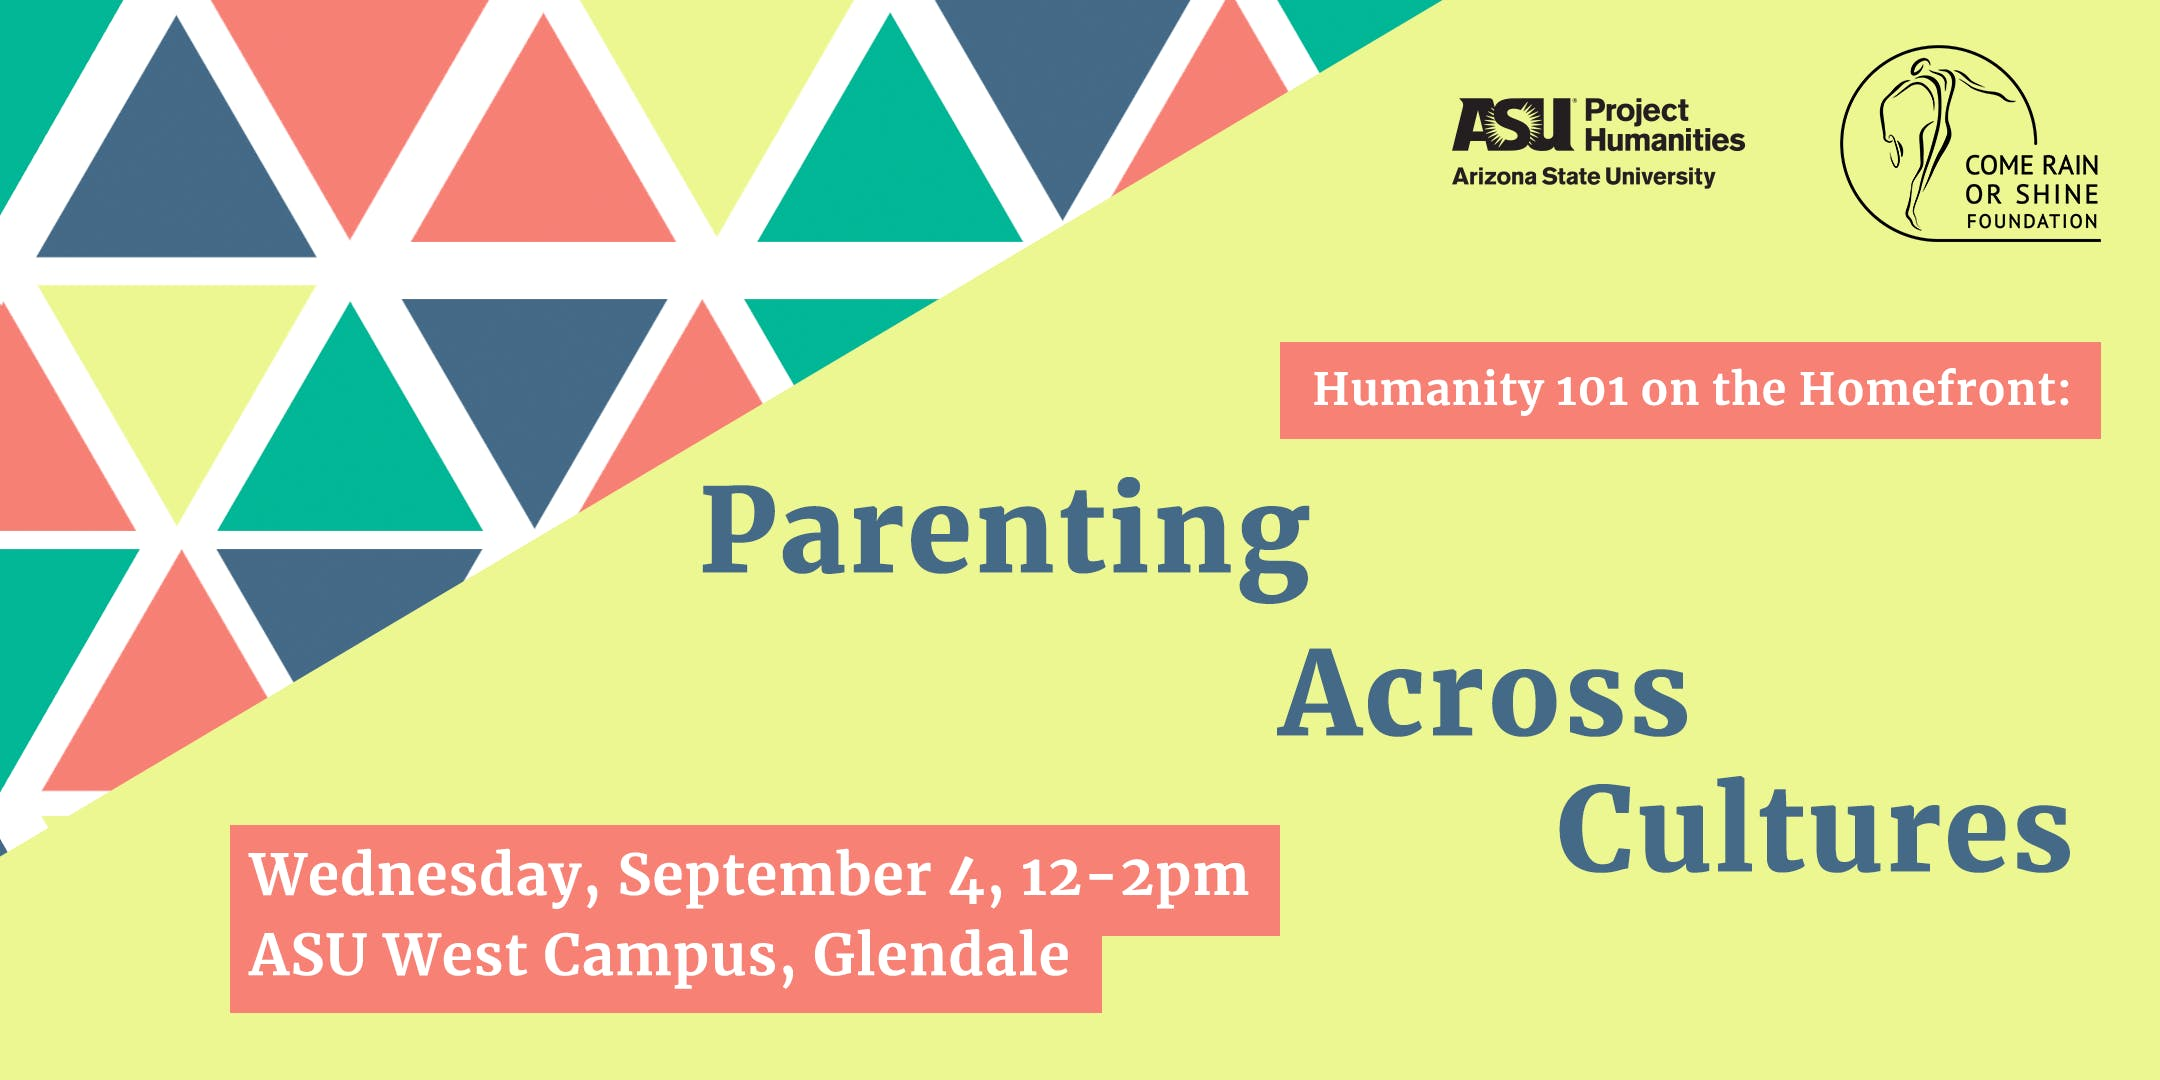 Humanity 101 on the Homefront: Parenting Across Cultures